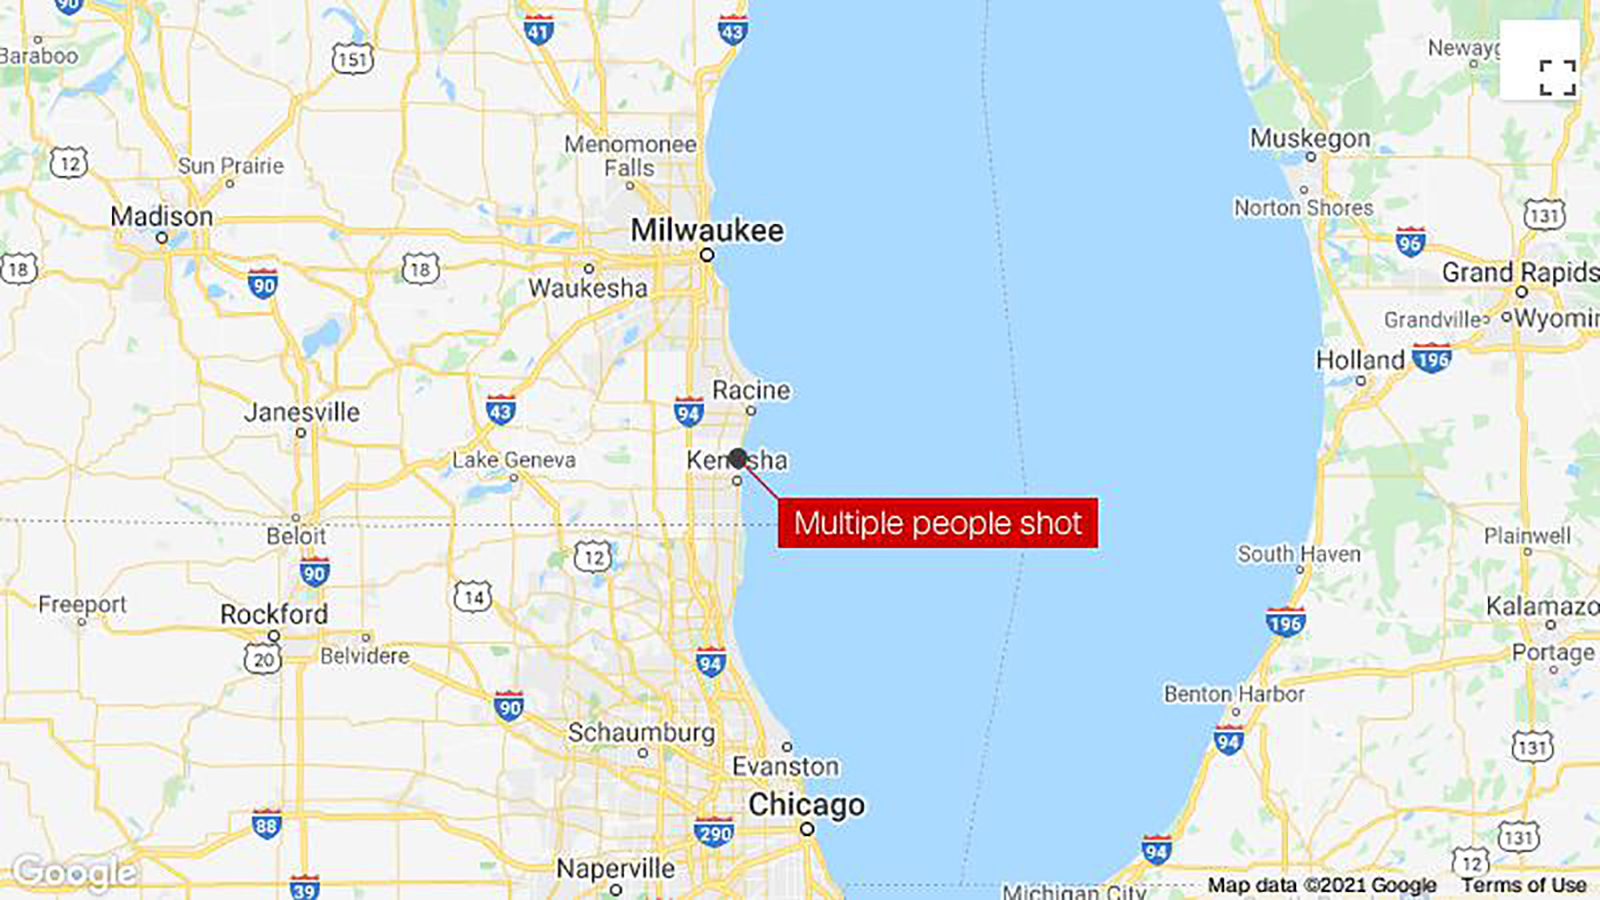 3 people were killed and 2 others injured in a shooting in Kenosha, Wisconsin, sheriff says